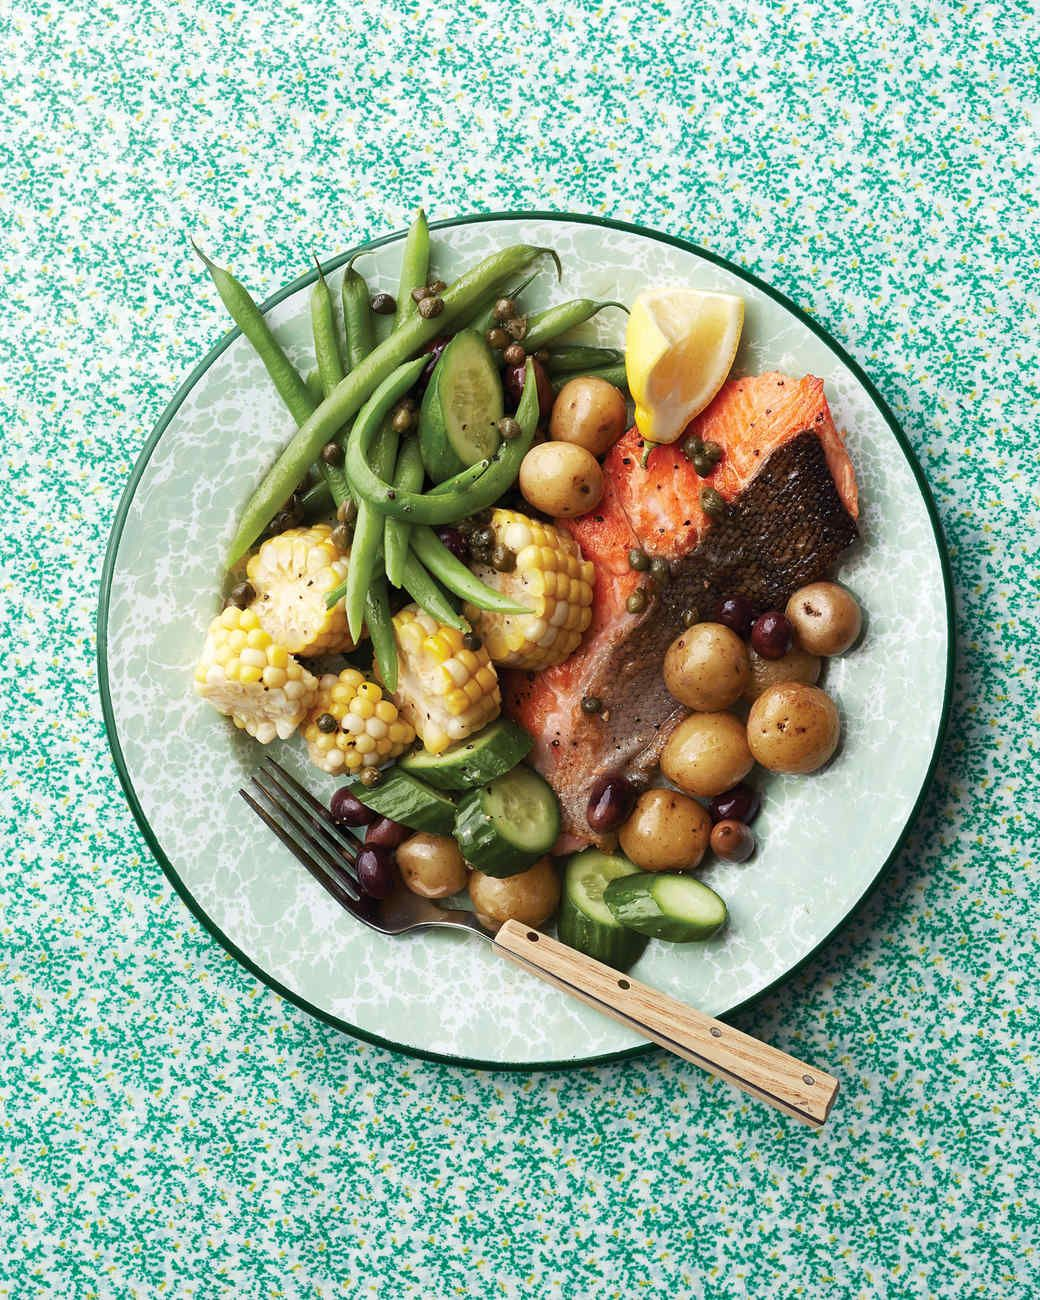 Lemony caper vinaigrette heightens the flavors of sweet summer corn and crisp, cool cucumber in this unconventional take on salade Nicoise.